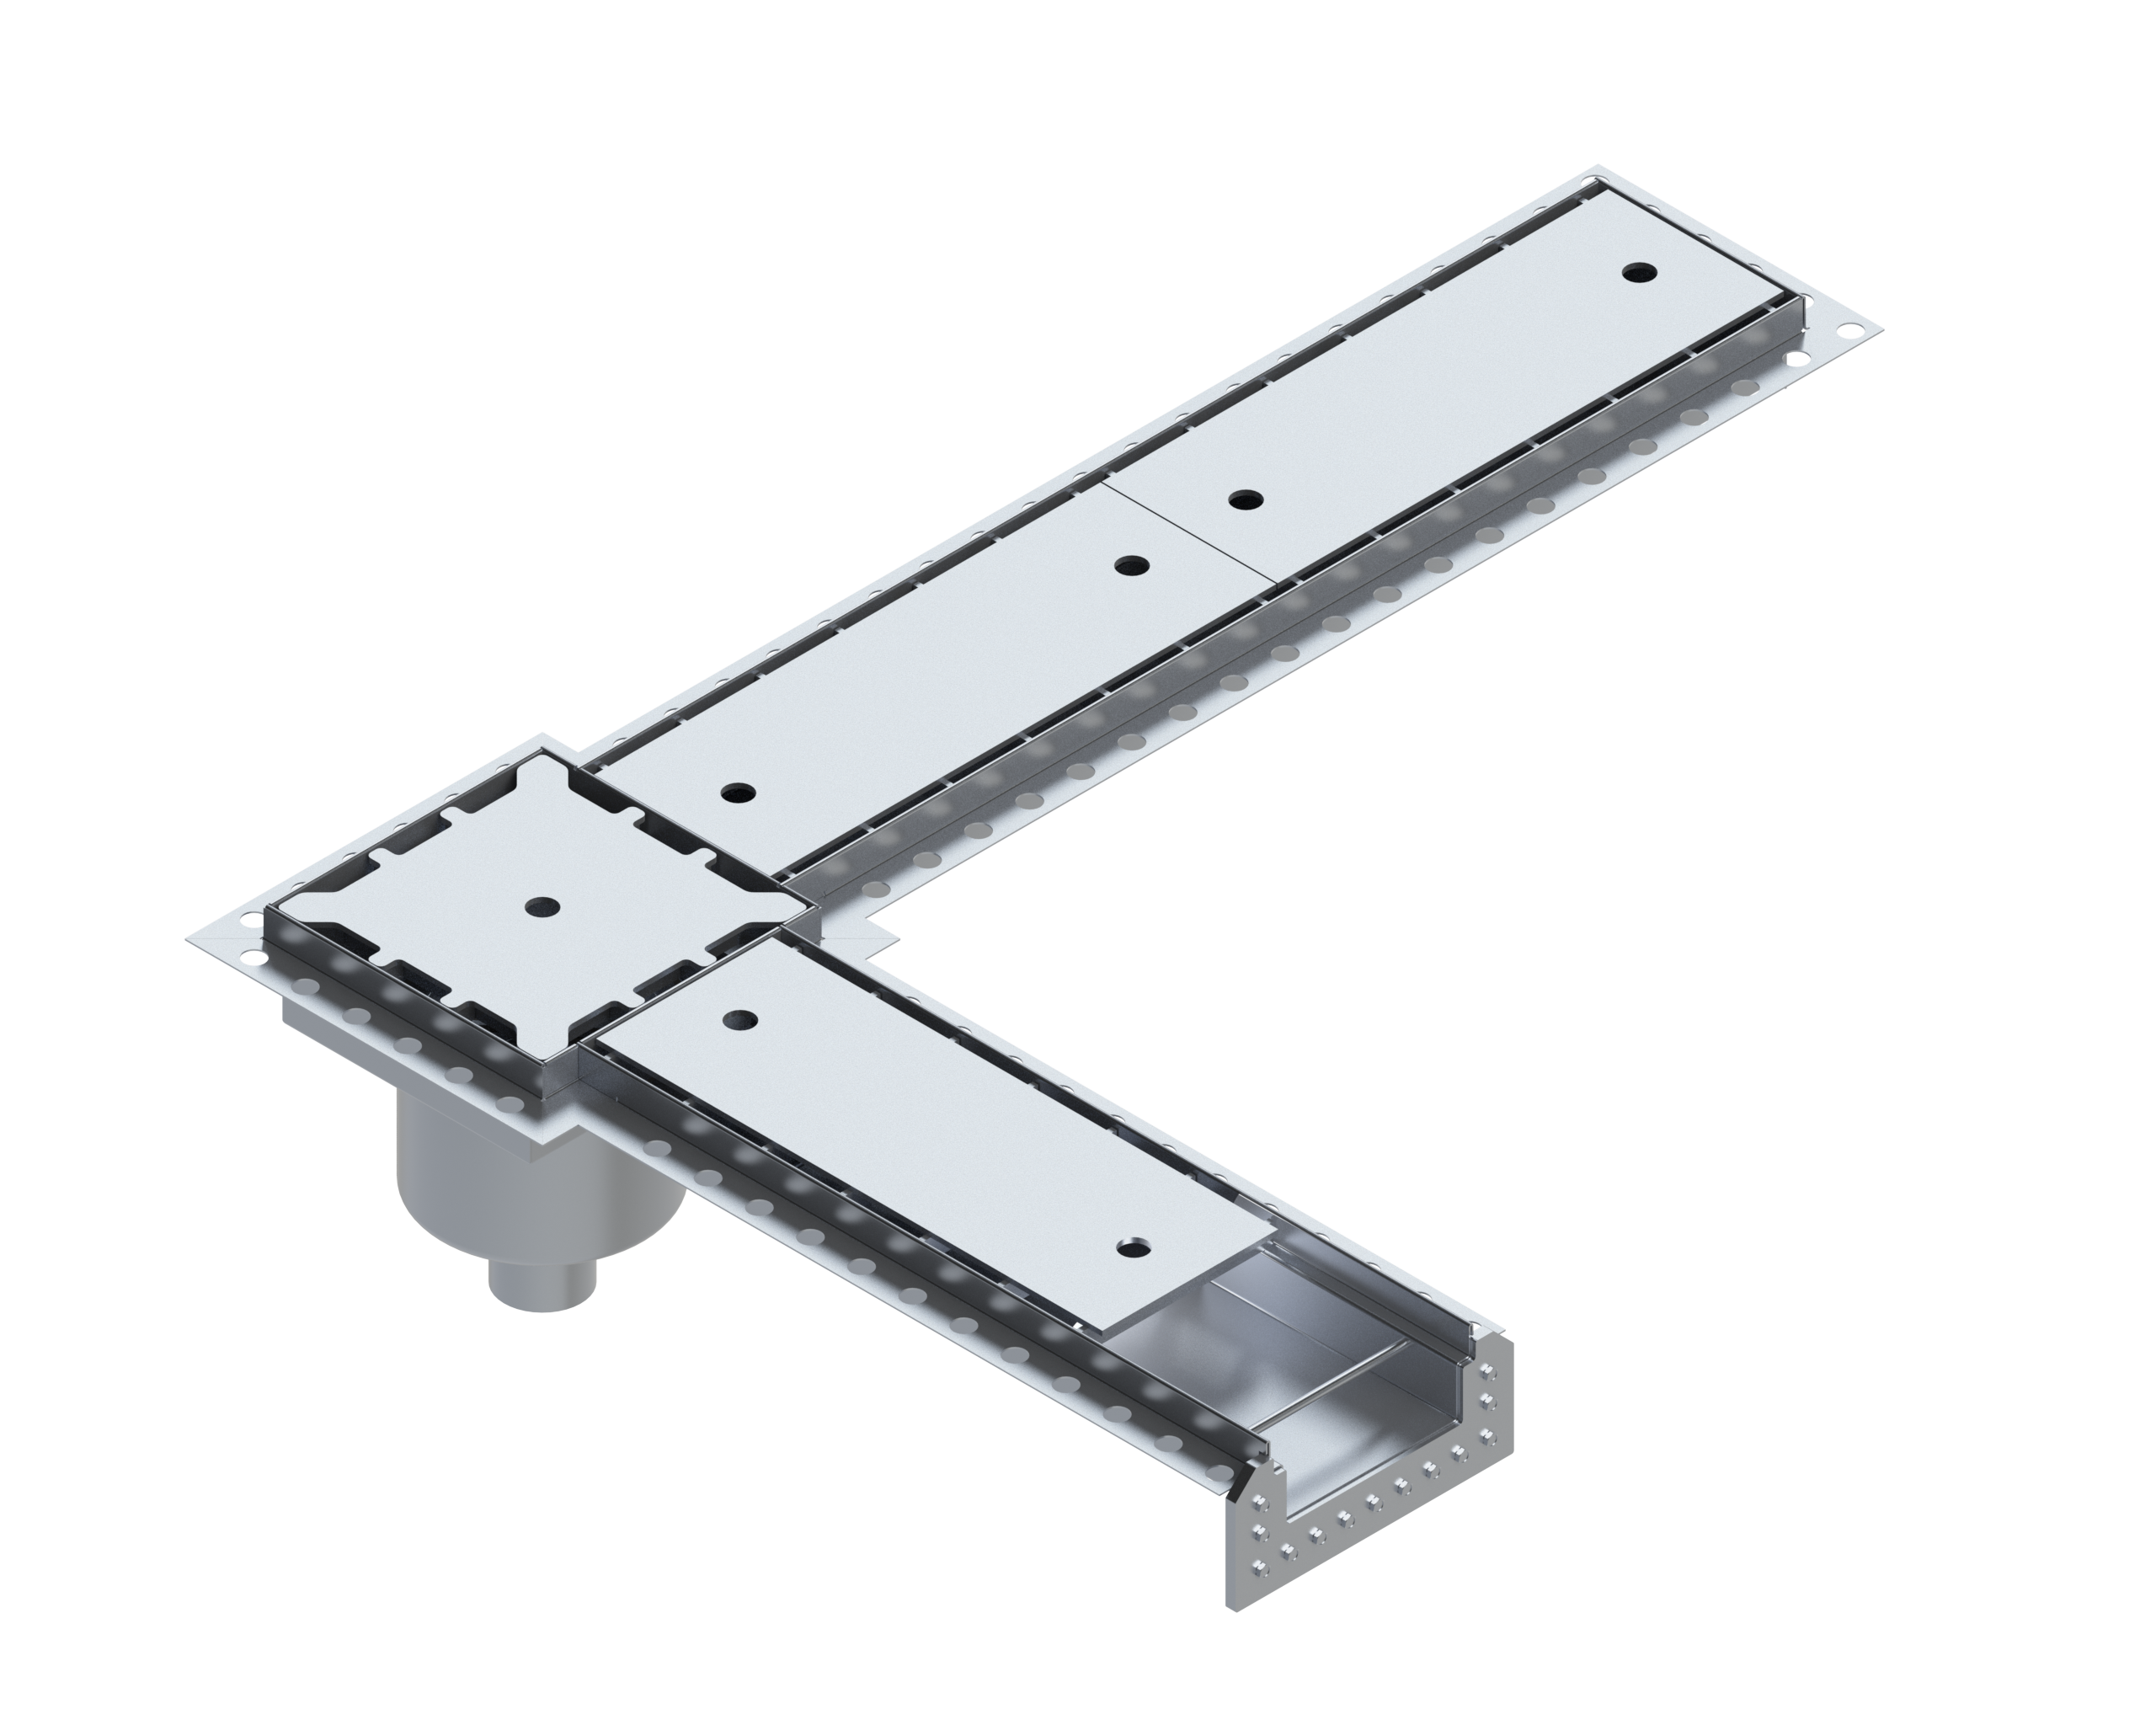 Modular stainless steel drain channels